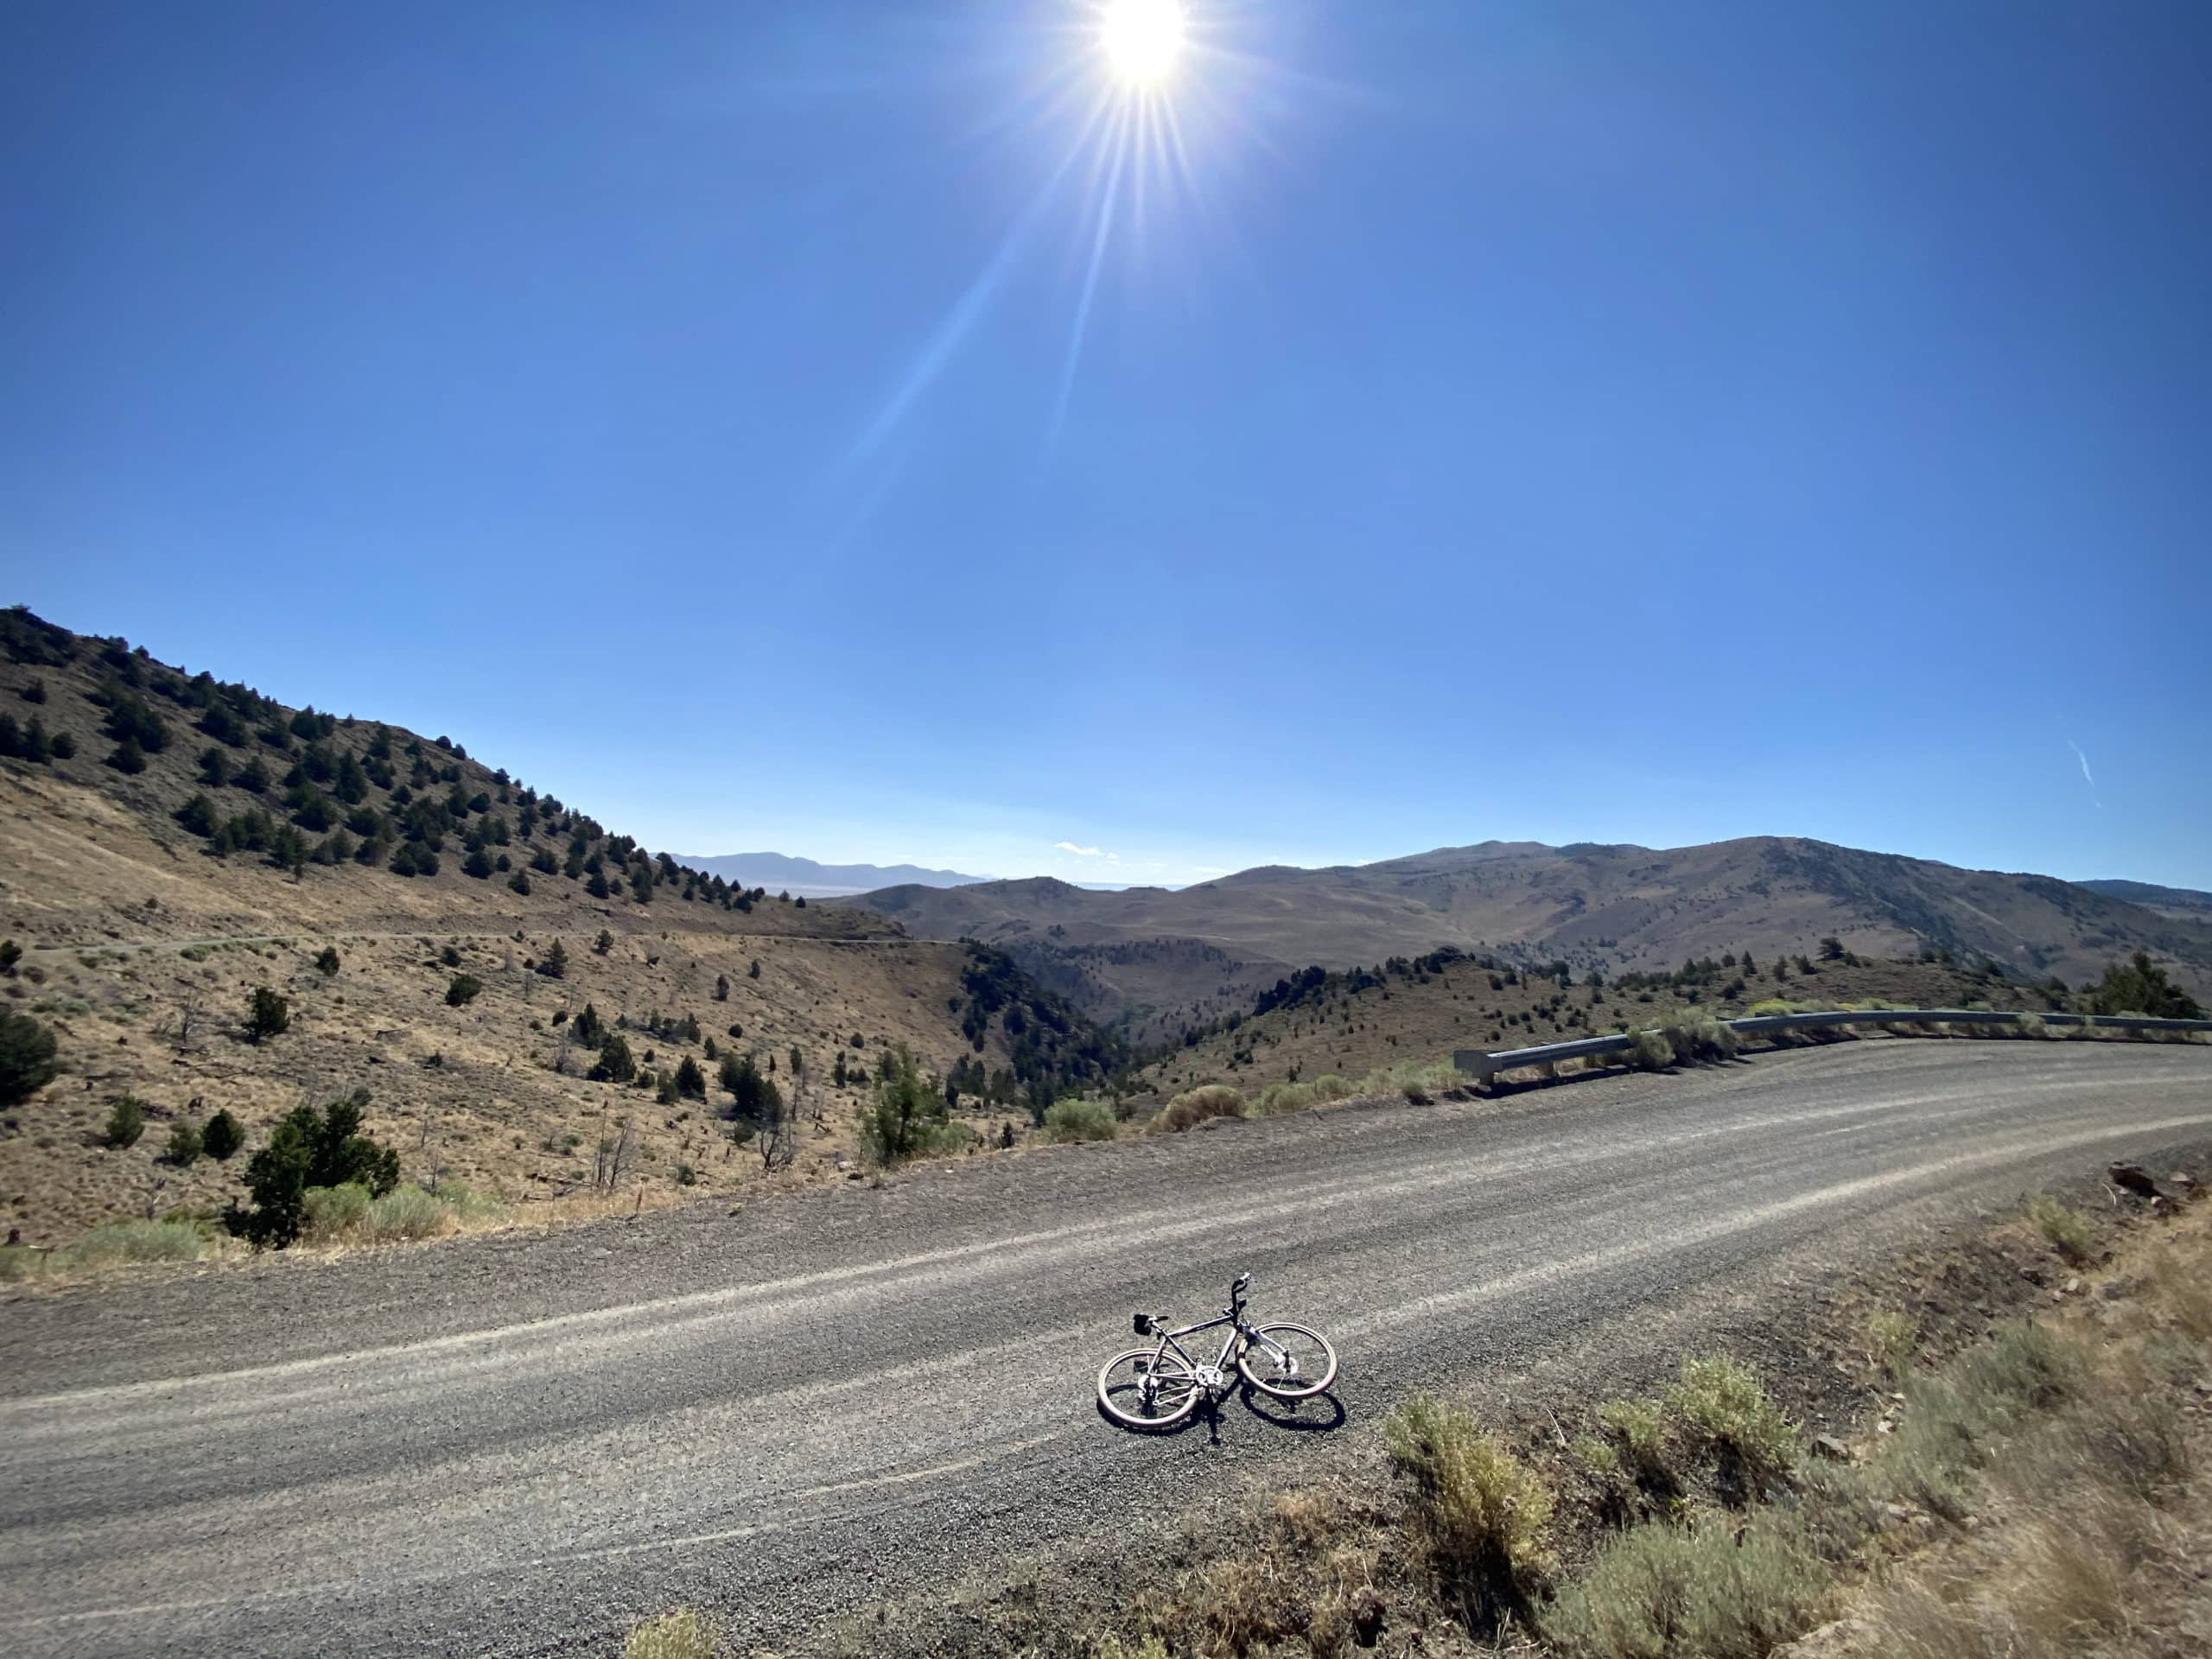 Gravel road with sweeping views of the hillsides, peaks, and mountains in Lake county, Oregon.